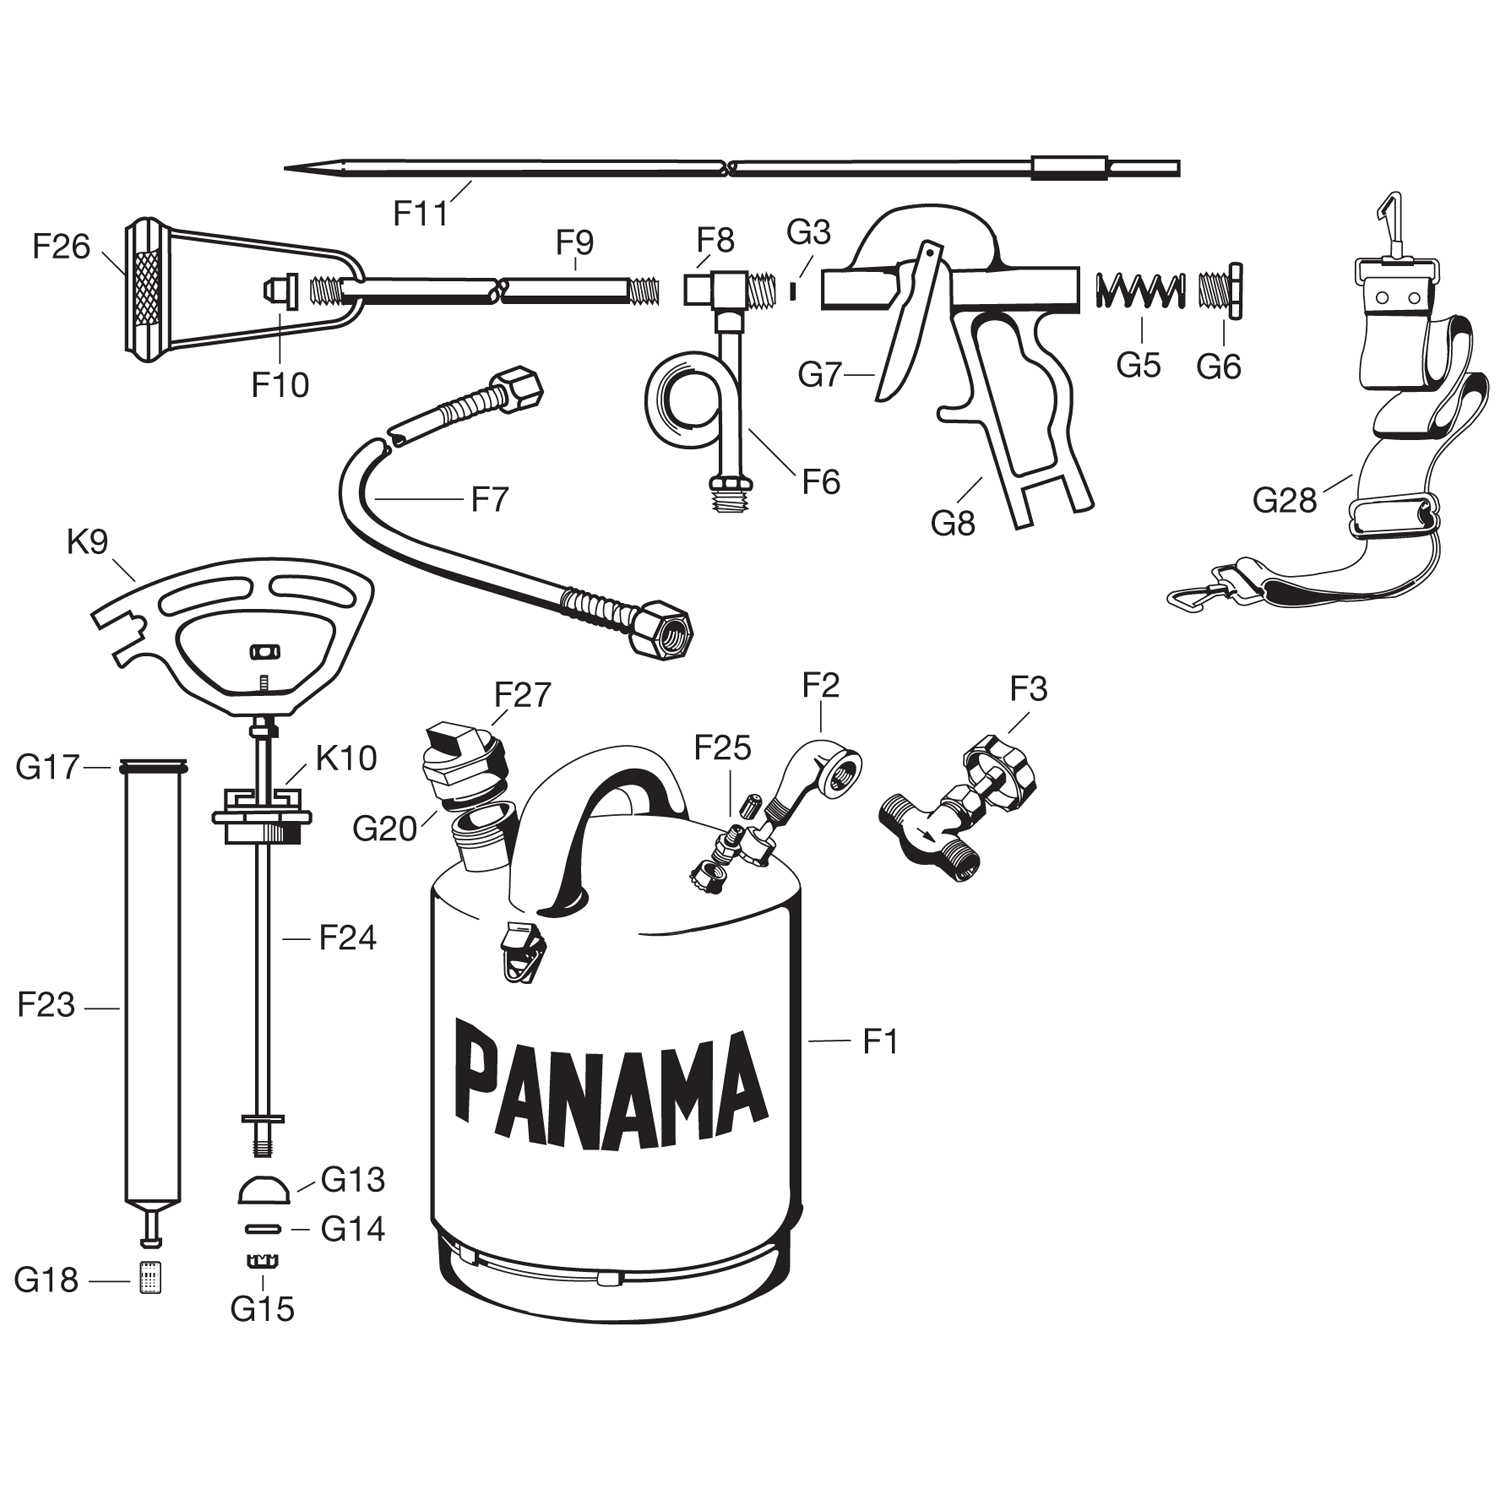 Panama Flame Torch Replacement Parts